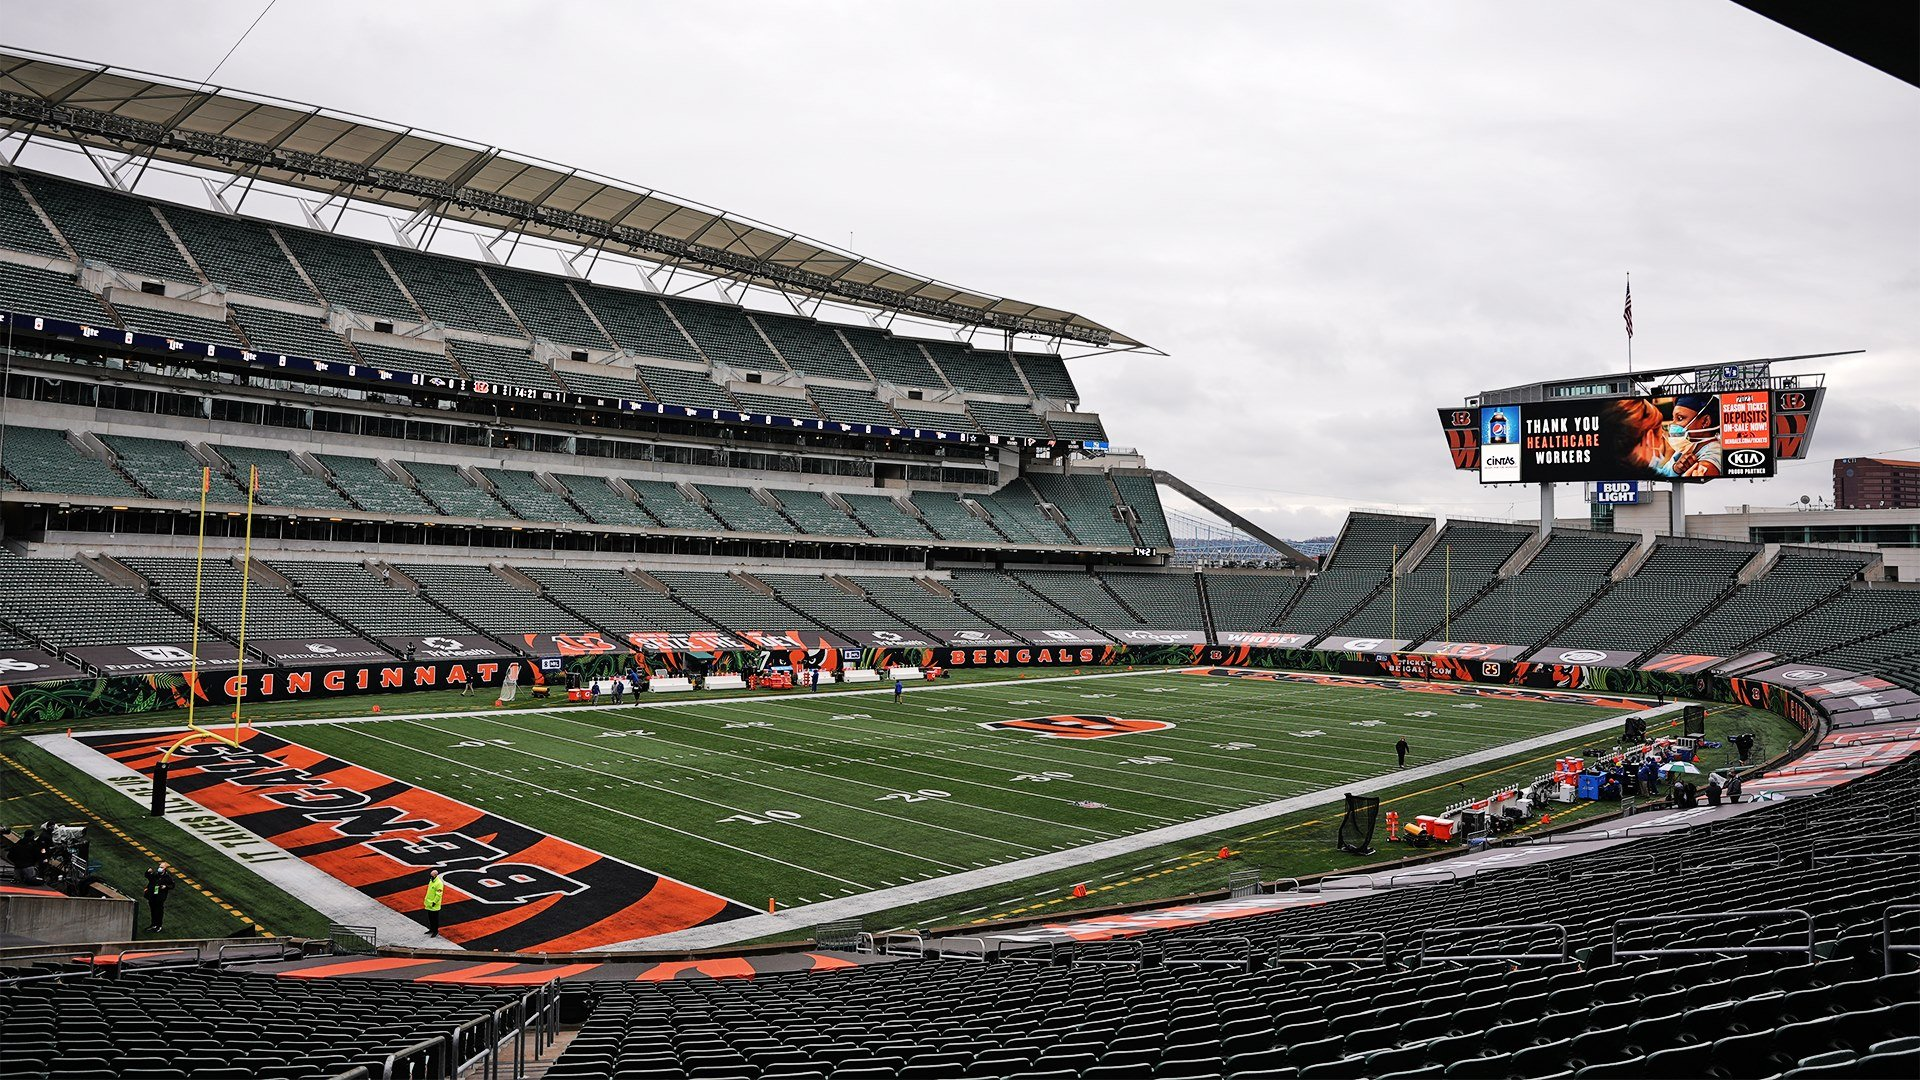 Cincinnati Bengals Renews with Relo for its Ease of Use and Functionality